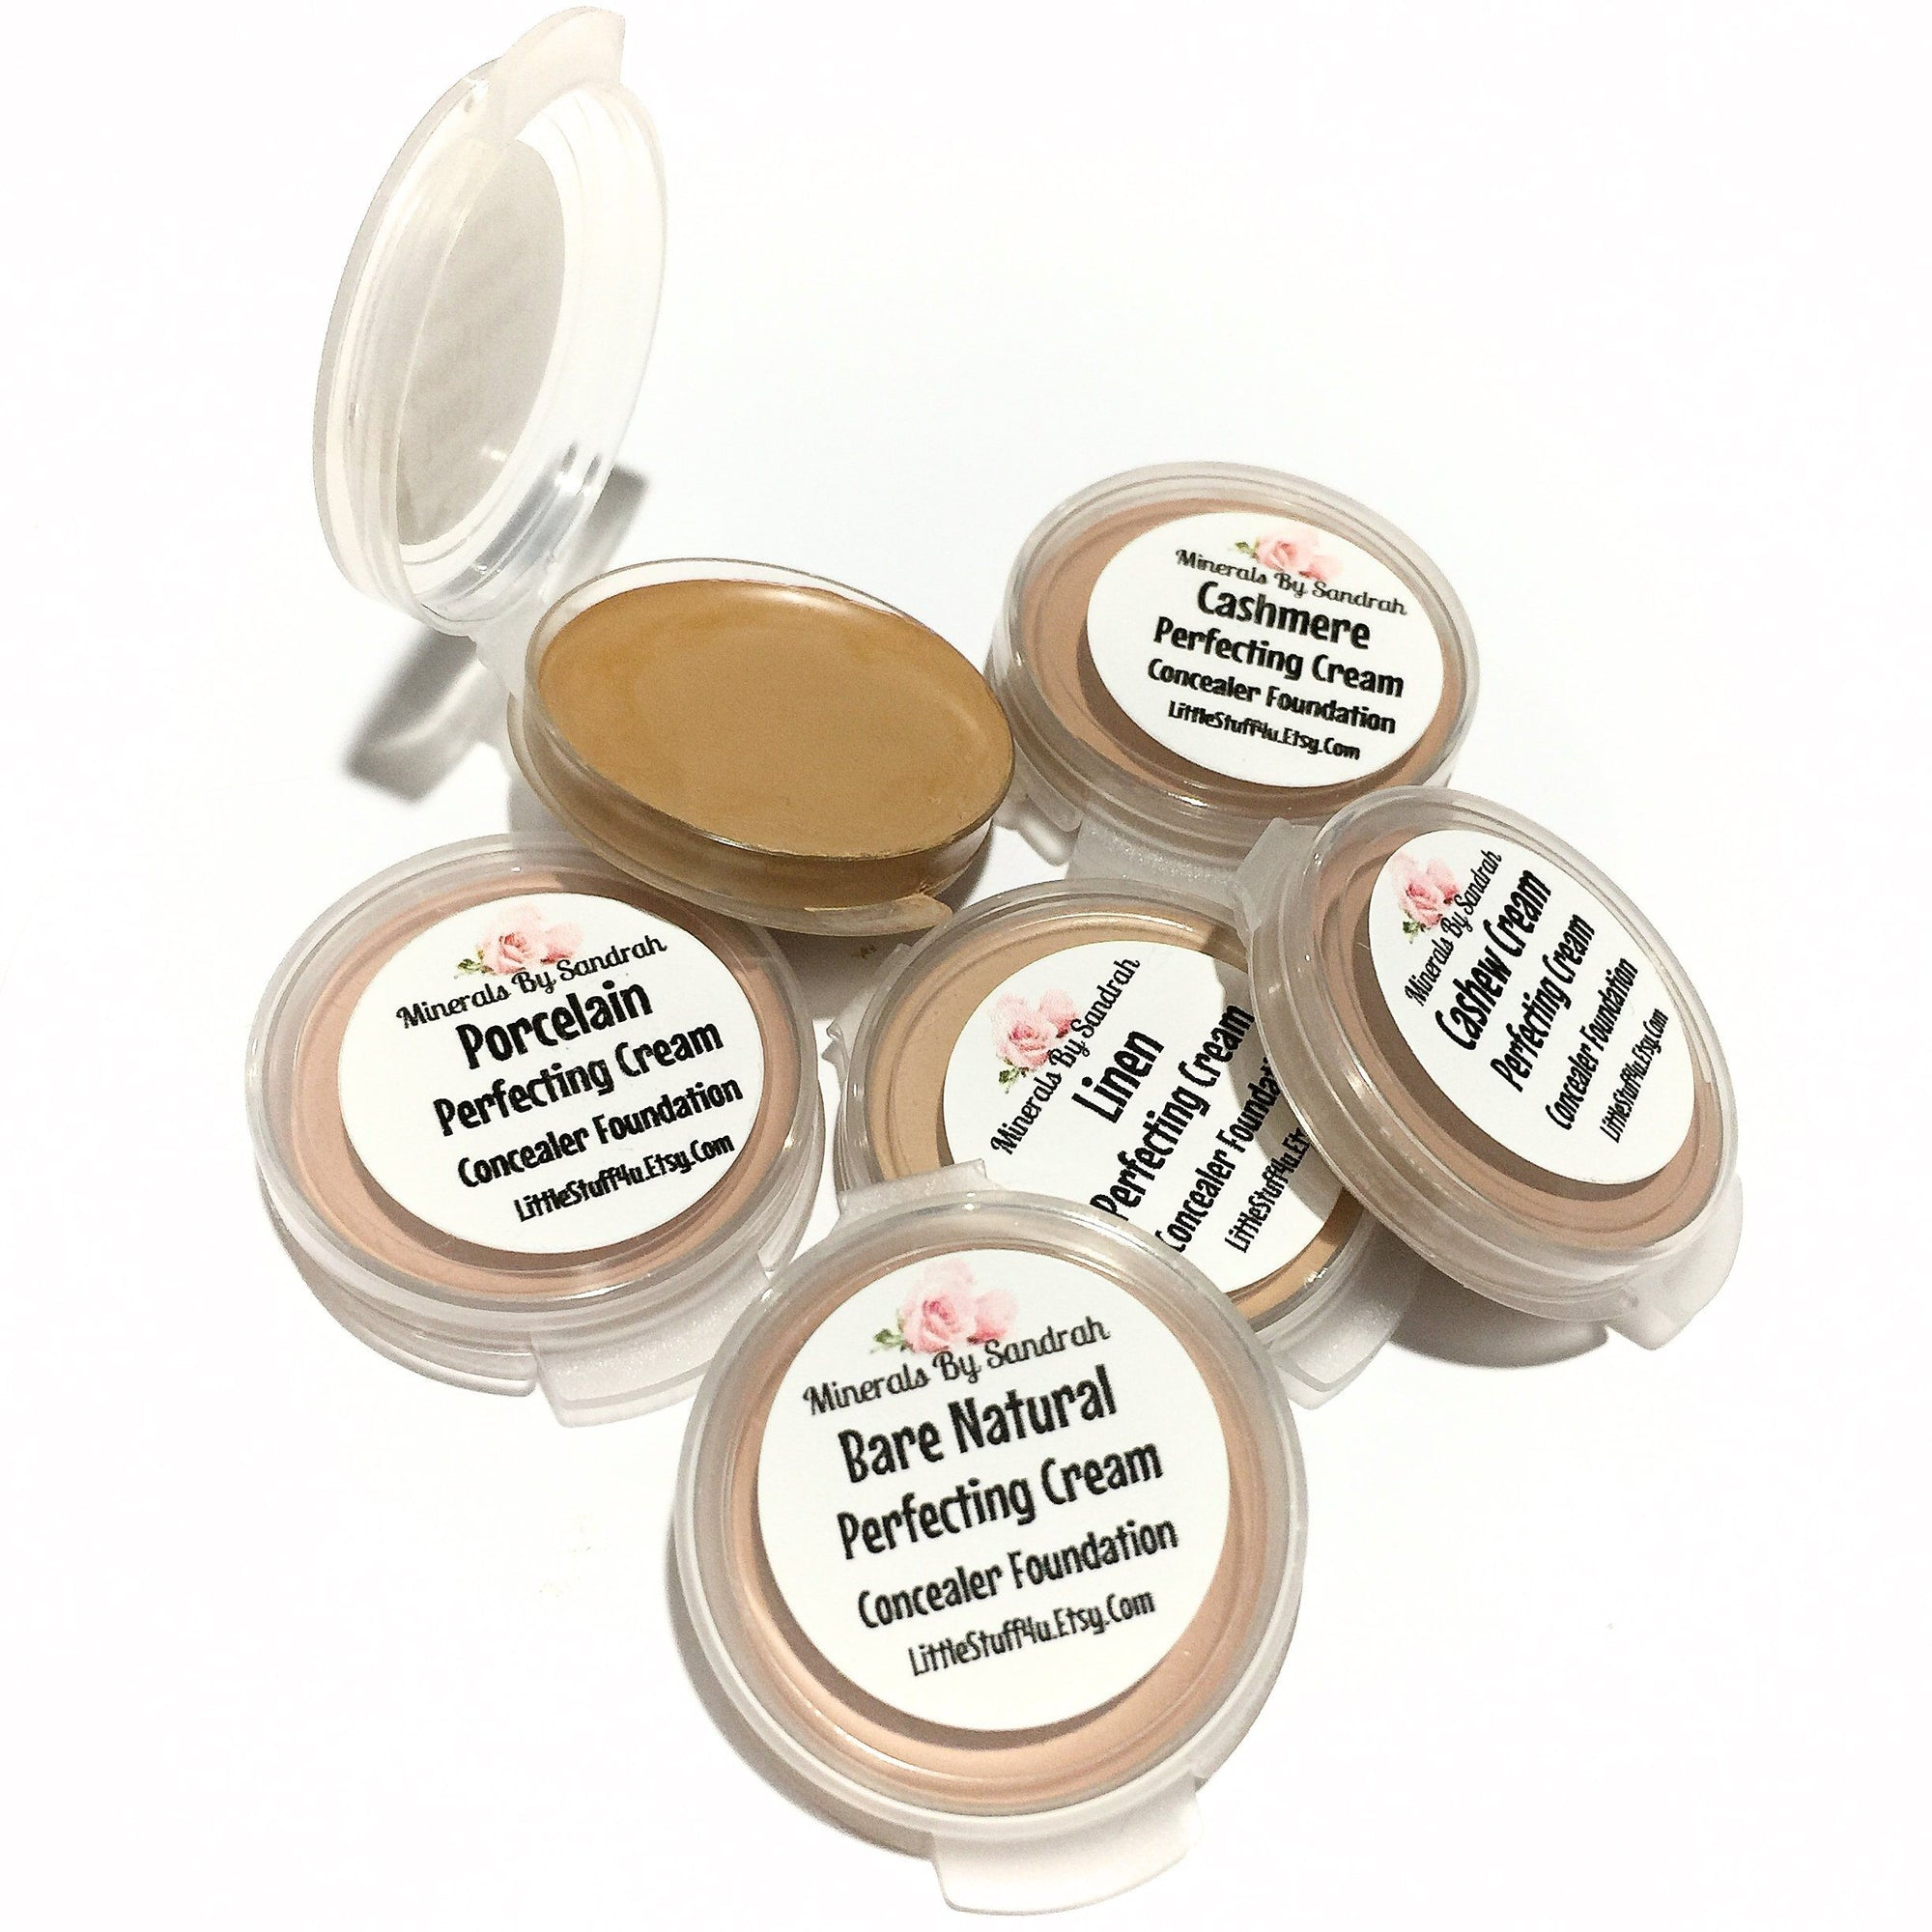 Perfecting Concealer Samples Set 4 - LittleStuff4u Minerals